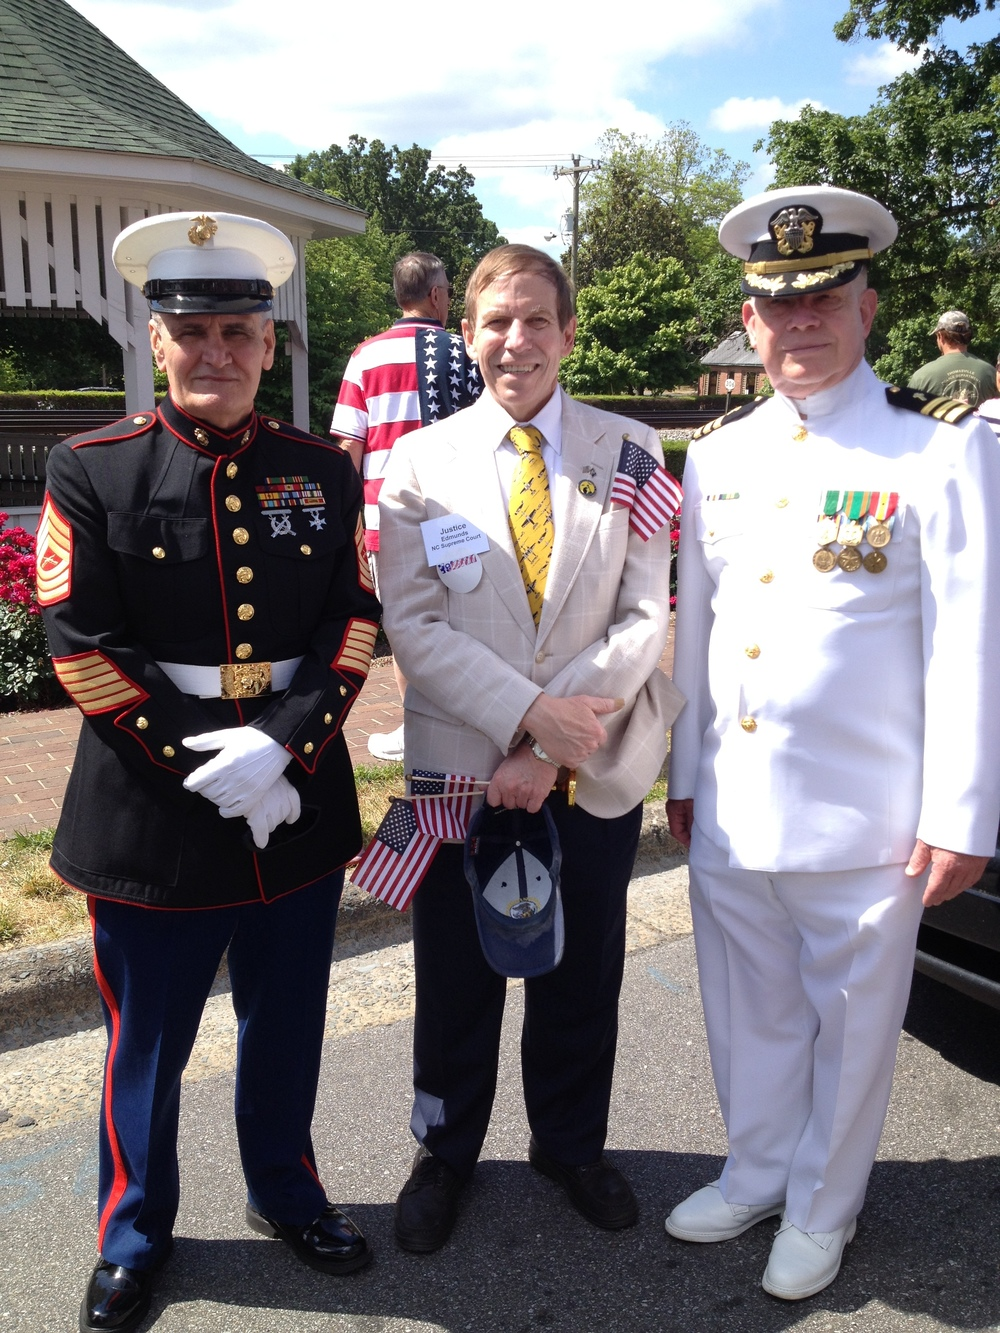 At the Thomasville, N.C. Memorial Day Parade 2015